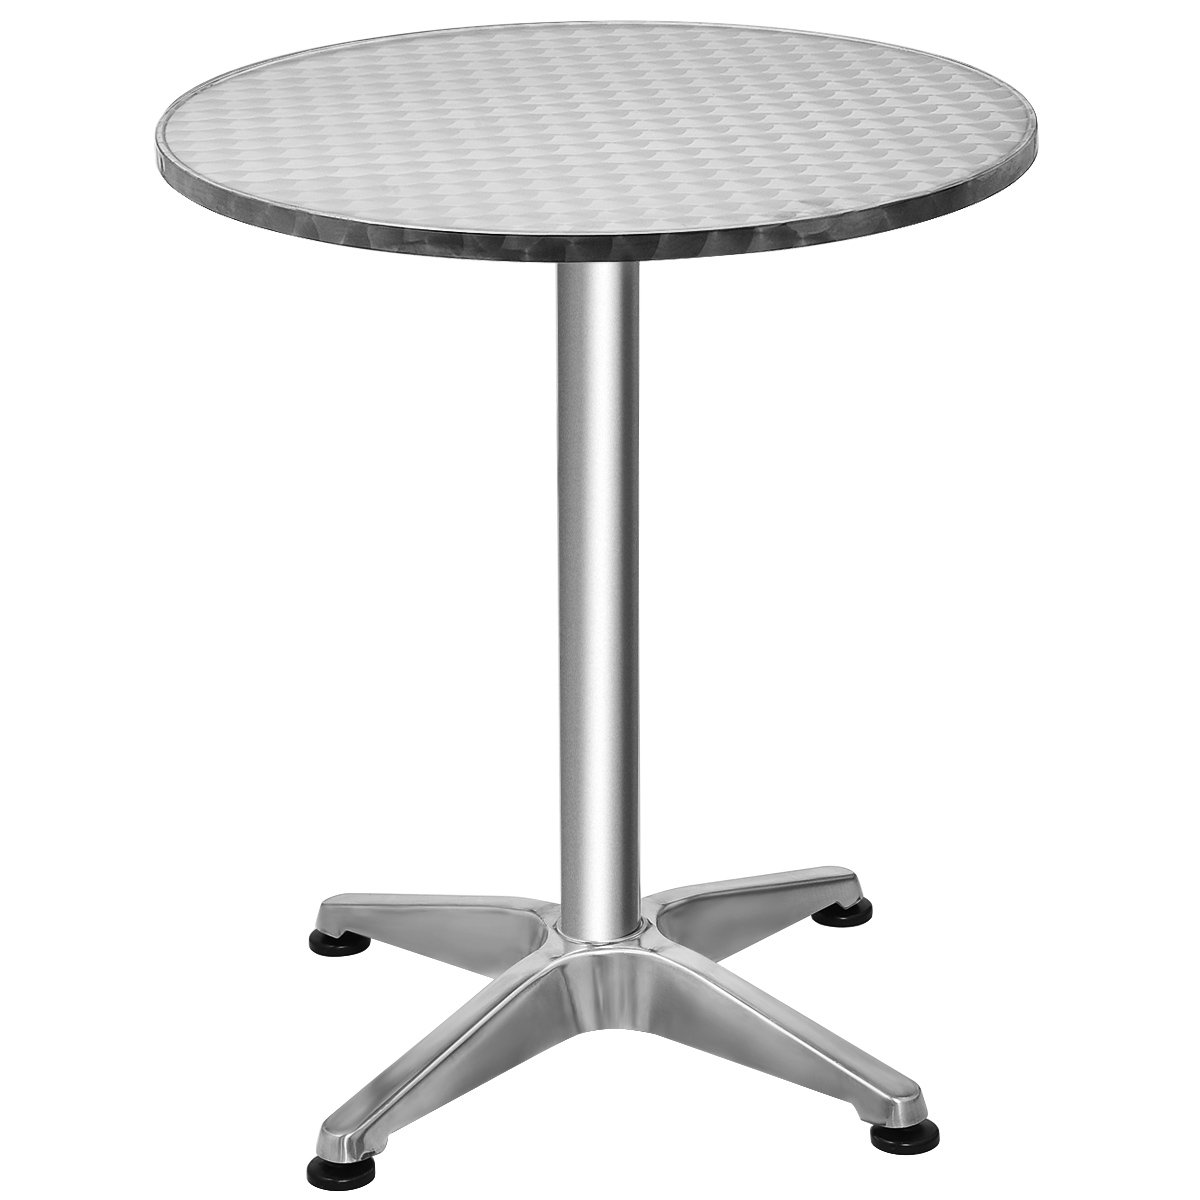 Giantex Aluminium Bistro Bar Table Round Top Indoor-Outdoor Bistro Pub w/Base, Silver